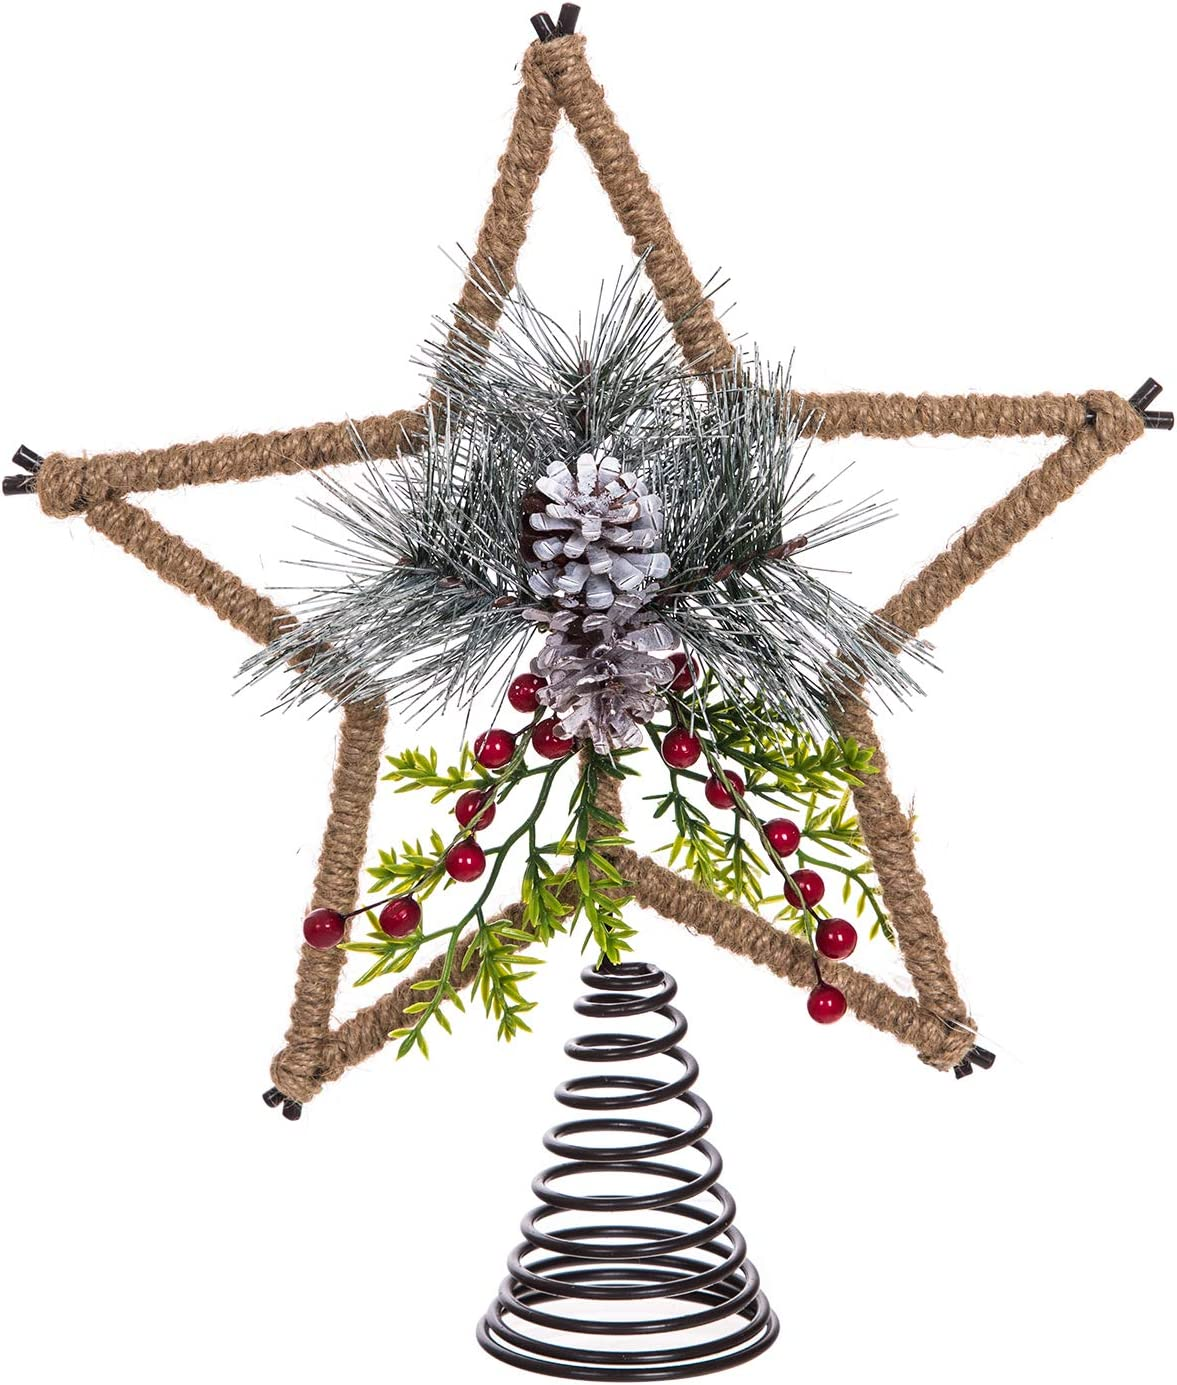 Tree Topper and Metal Star Popular brand in the world Treetop Christmas Decoration for Popular Holi